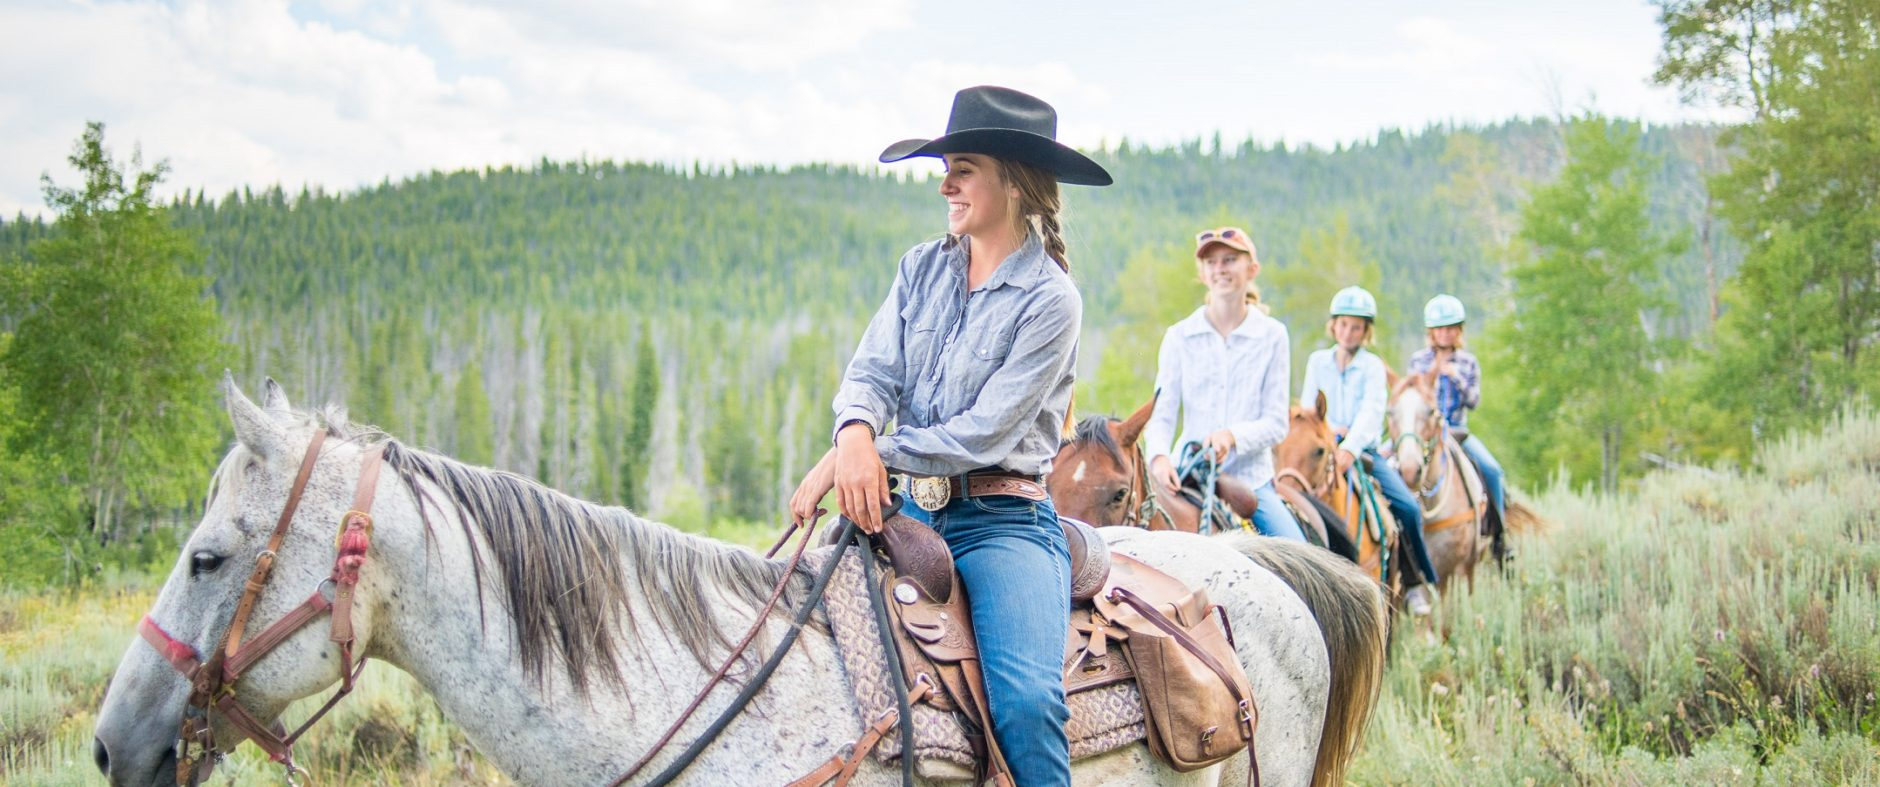 guided trail ride in Stanley Idaho, family friendly trail ride